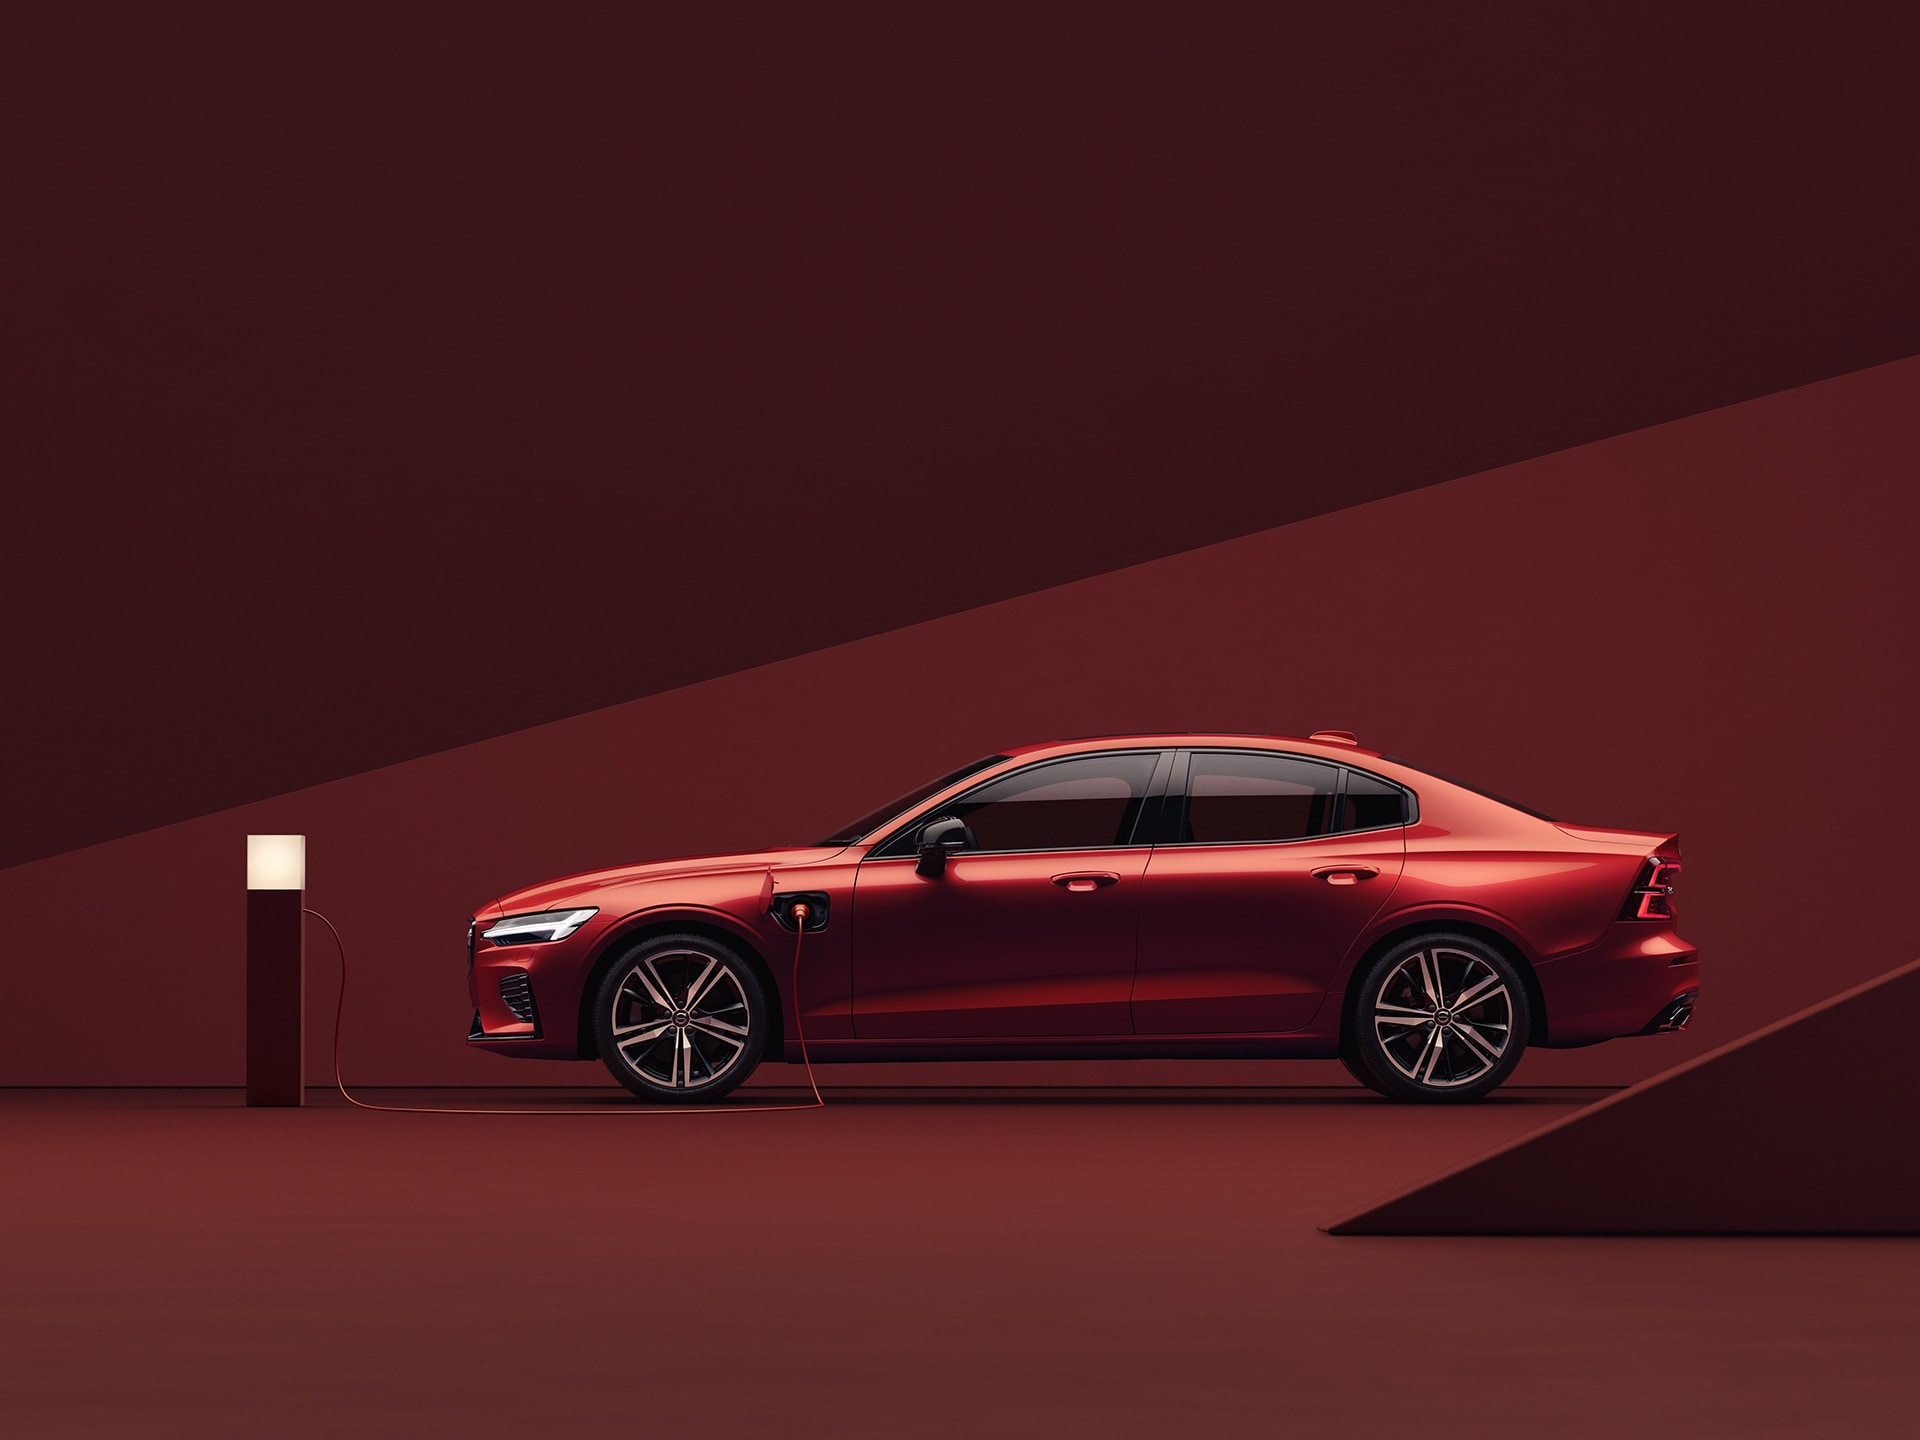 A red Volvo S60 Recharge, charging in a red surrounding.